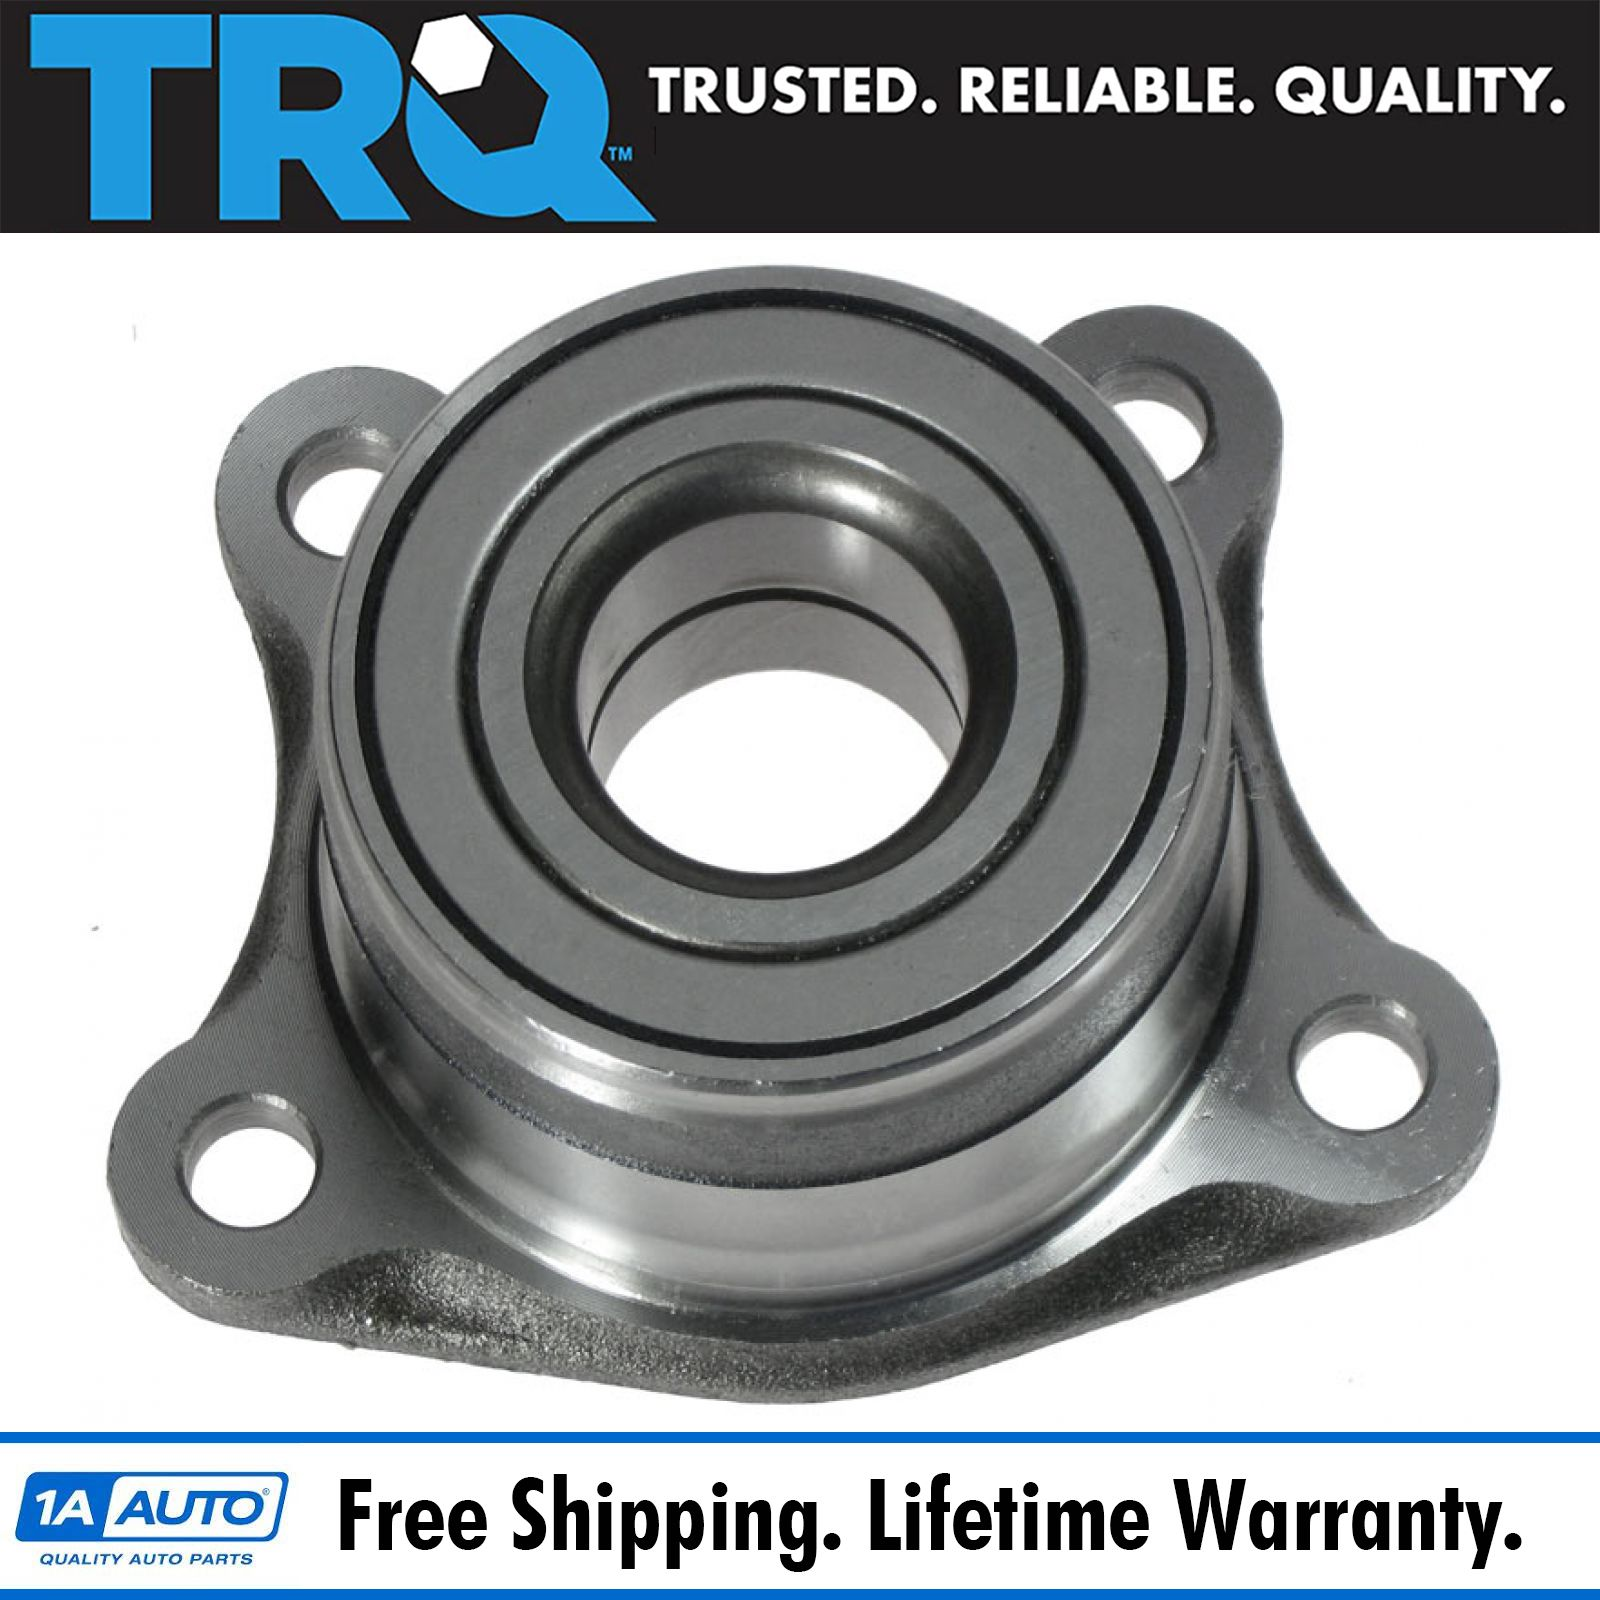 2019 Toyota Camry Hub Bearing Assembly Rear Axle Left: Rear Wheel Hub Bearing Module Left Or Right For Camry